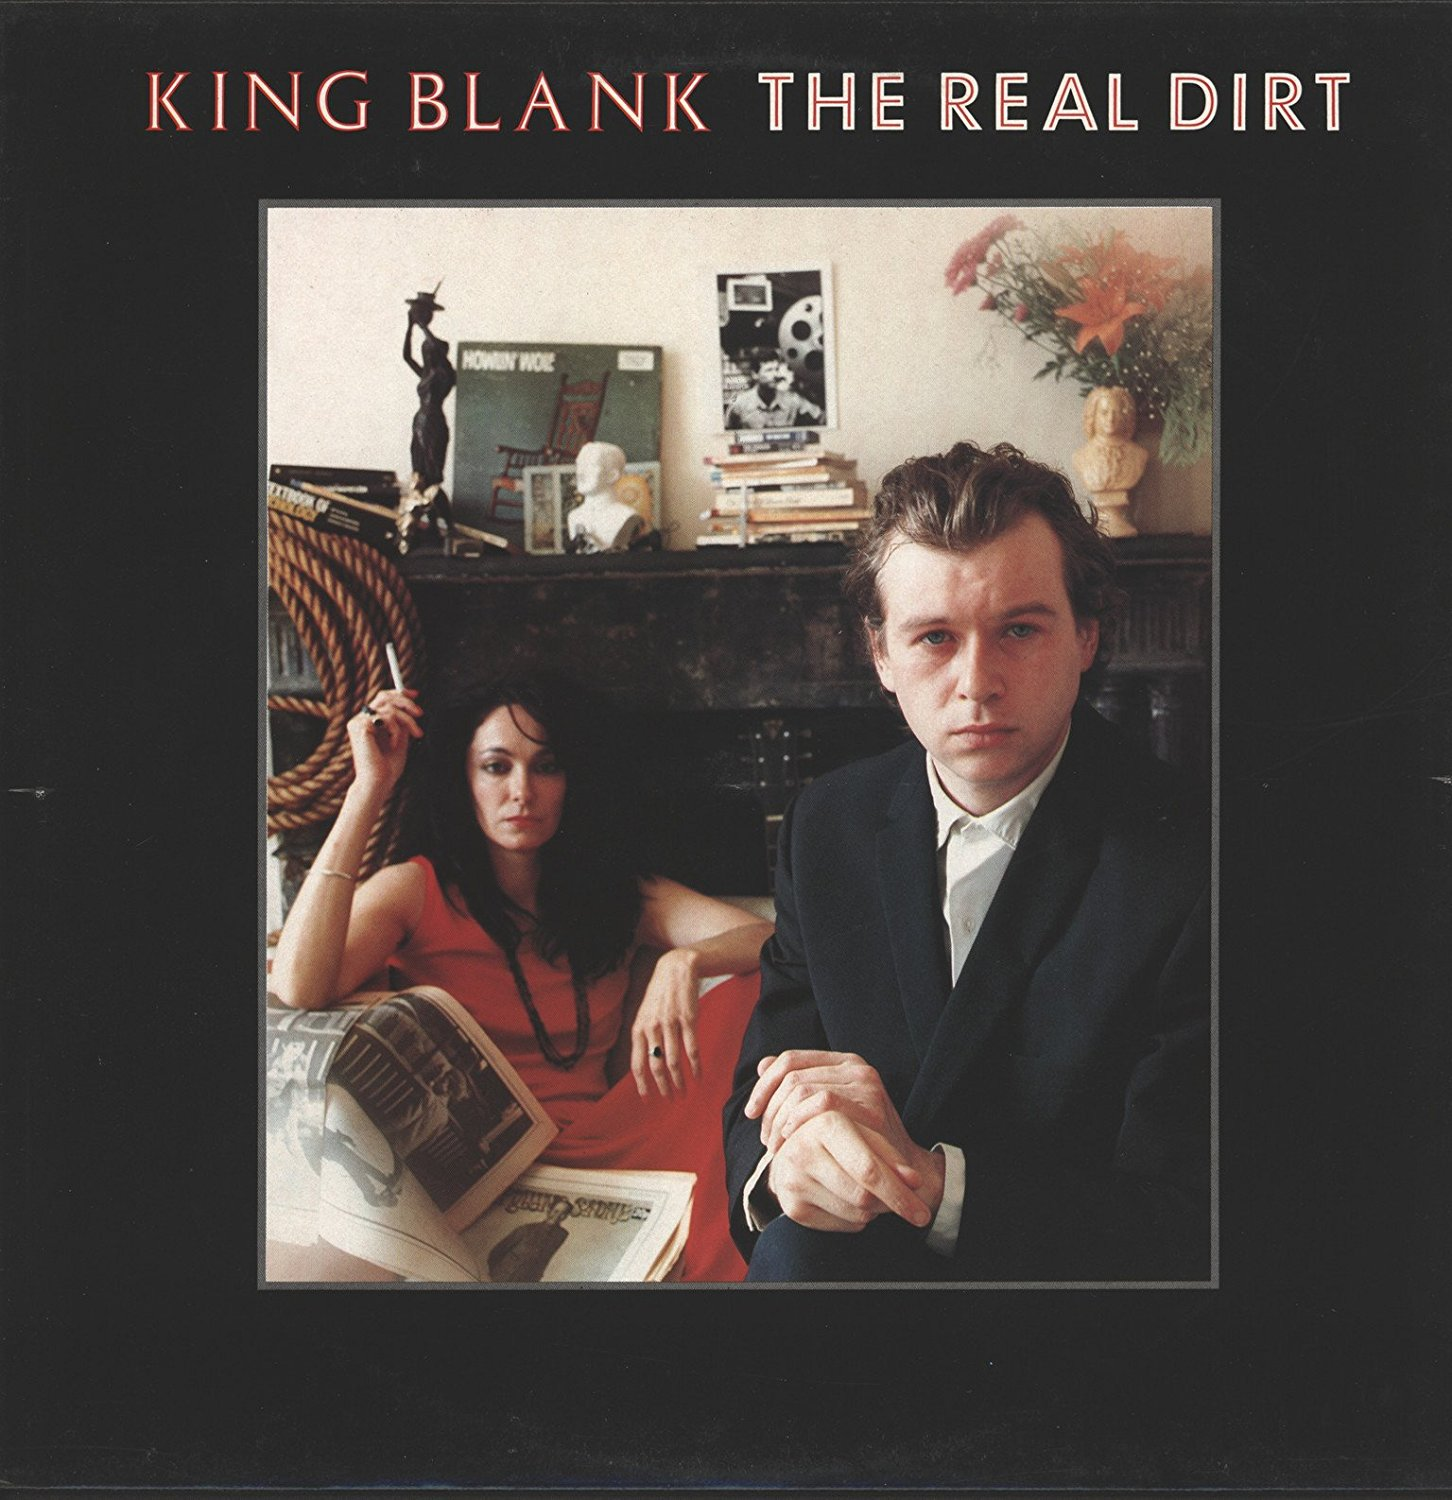 King Blank The Real Dirt Cover